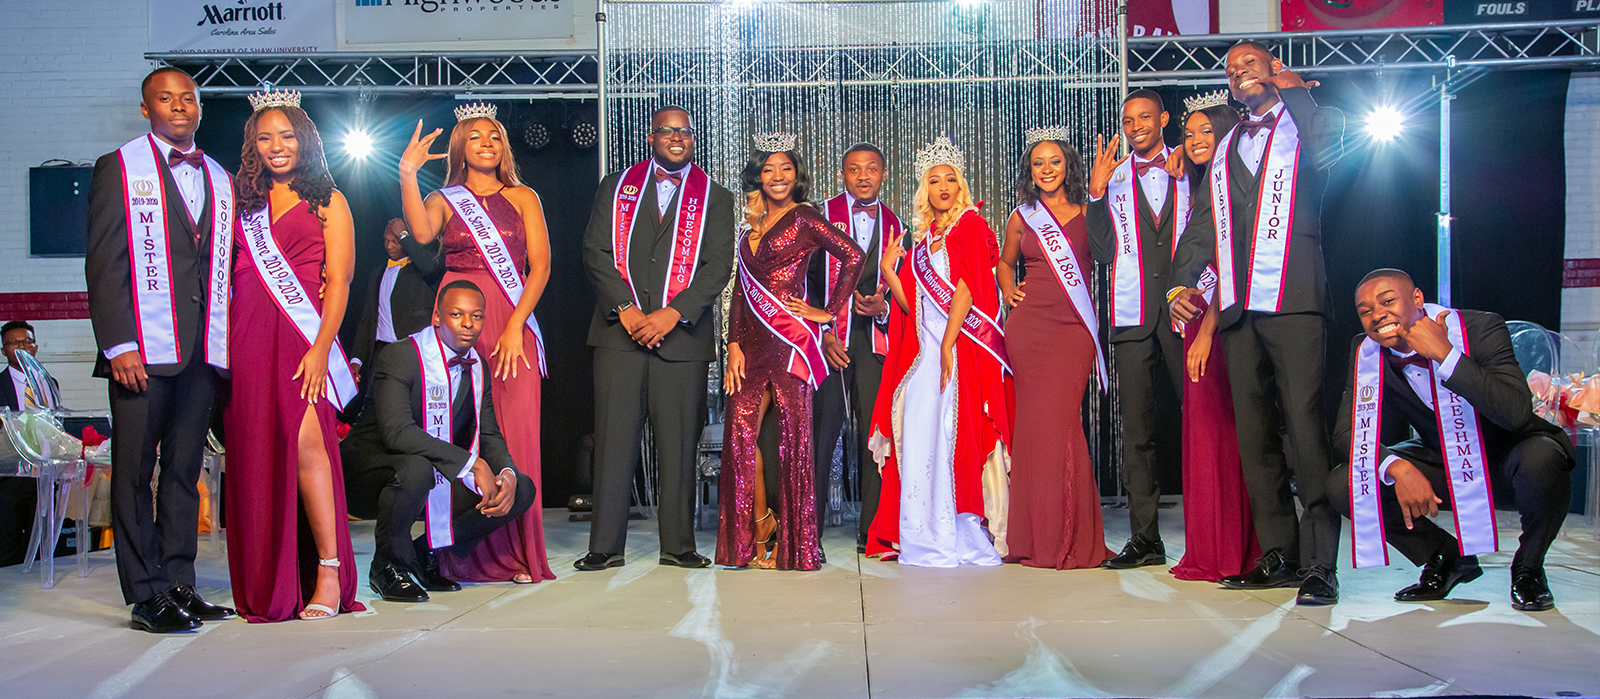 Shaw University Royal Court